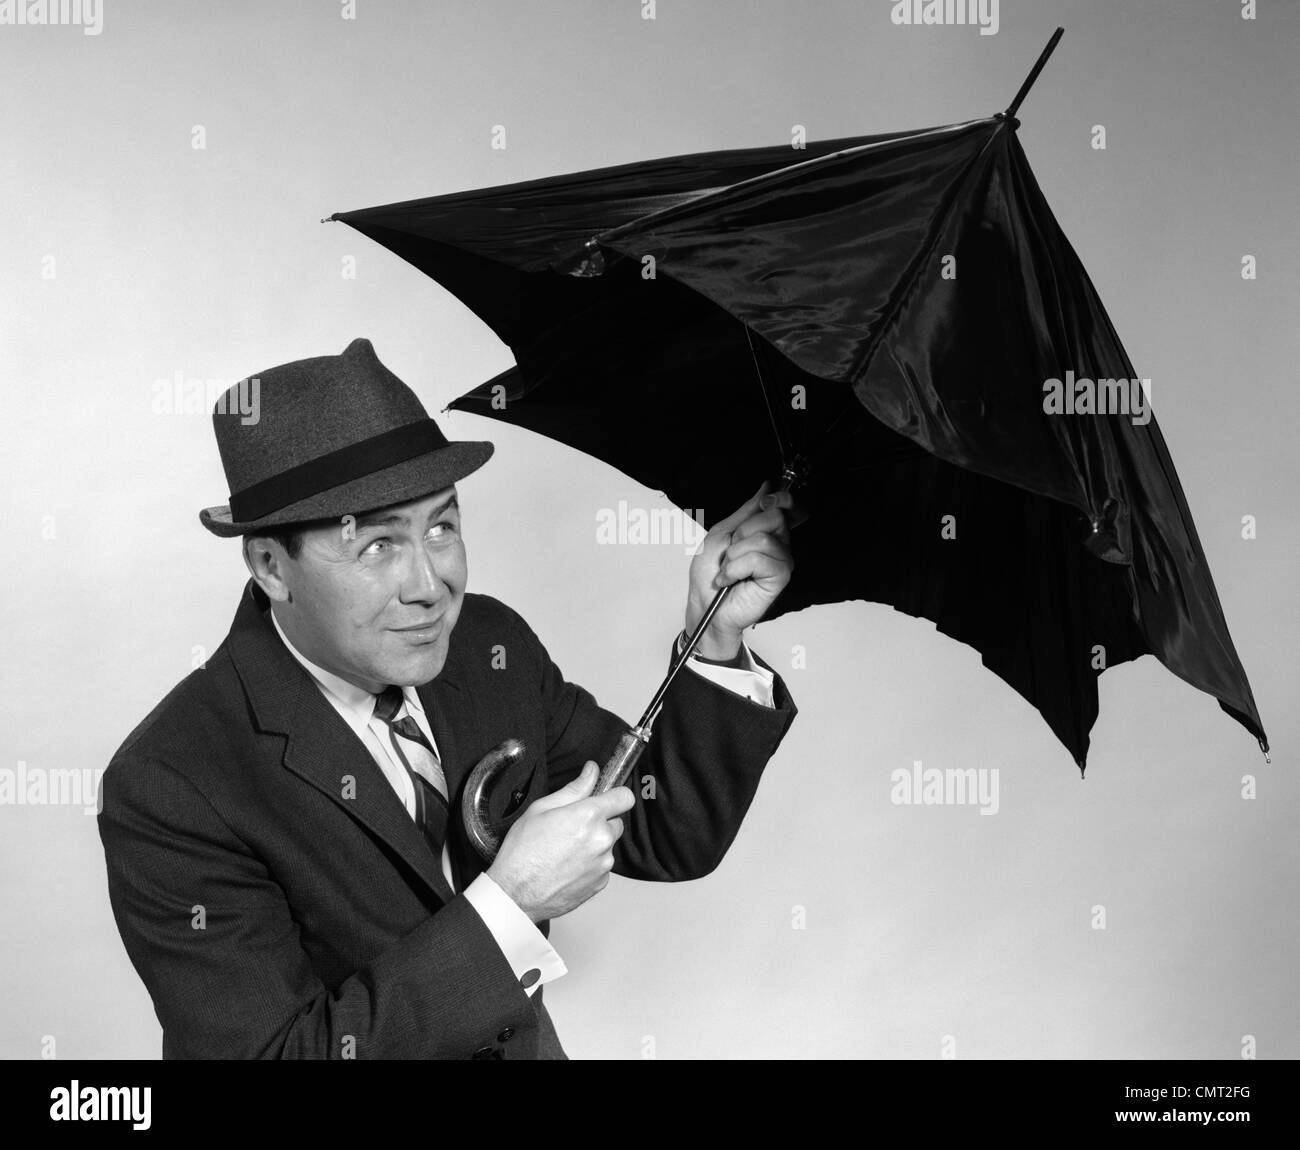 1960s BUSINESSMAN OPENING UP UMBRELLA - Stock Image